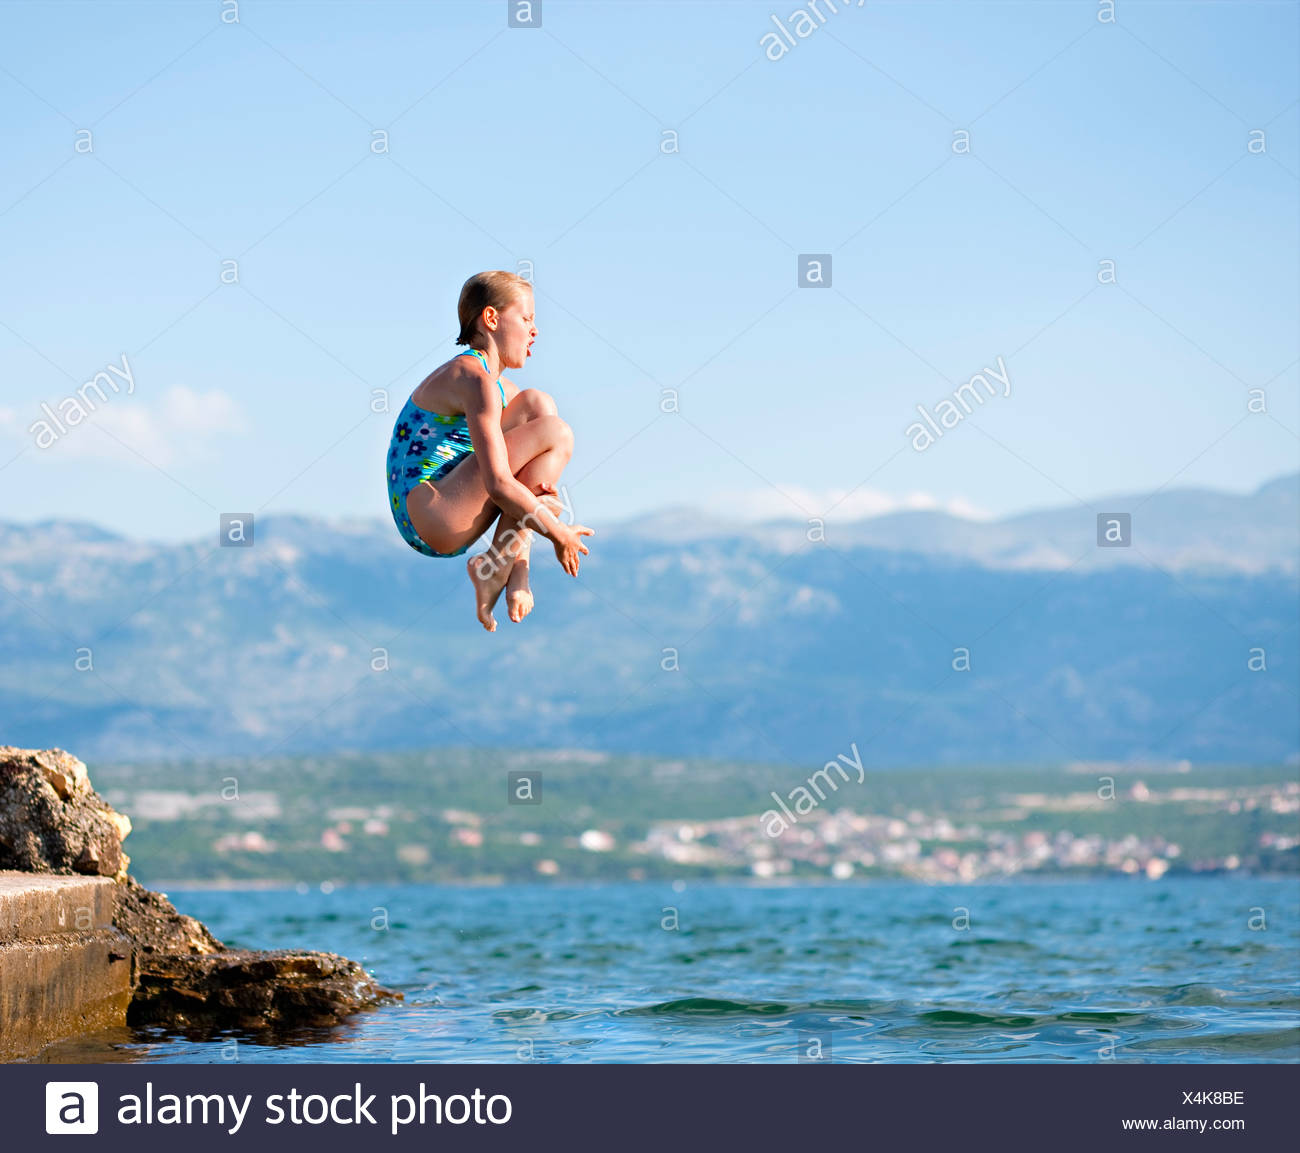 Cannonball Diving Stock Photos & Cannonball Diving Stock Images - Alamy